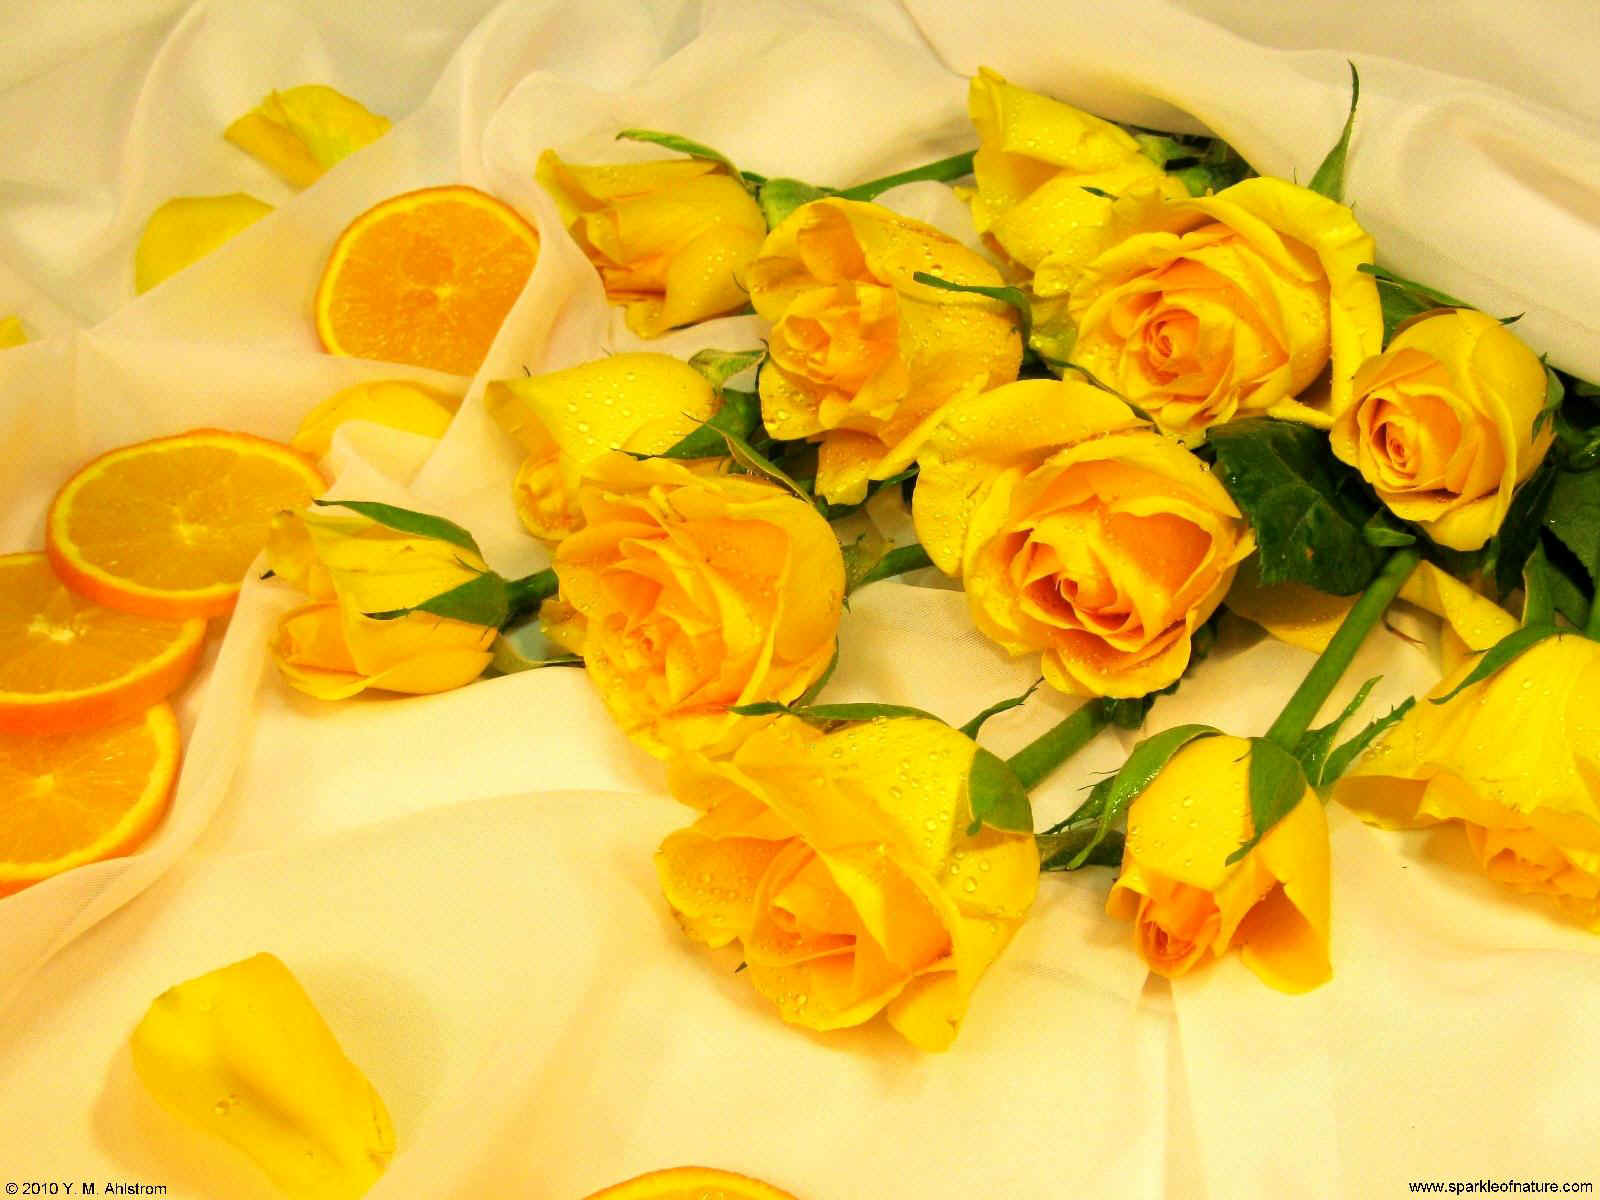 20091 oranges and yellow roses 1600x1200.jpg (213254 bytes)